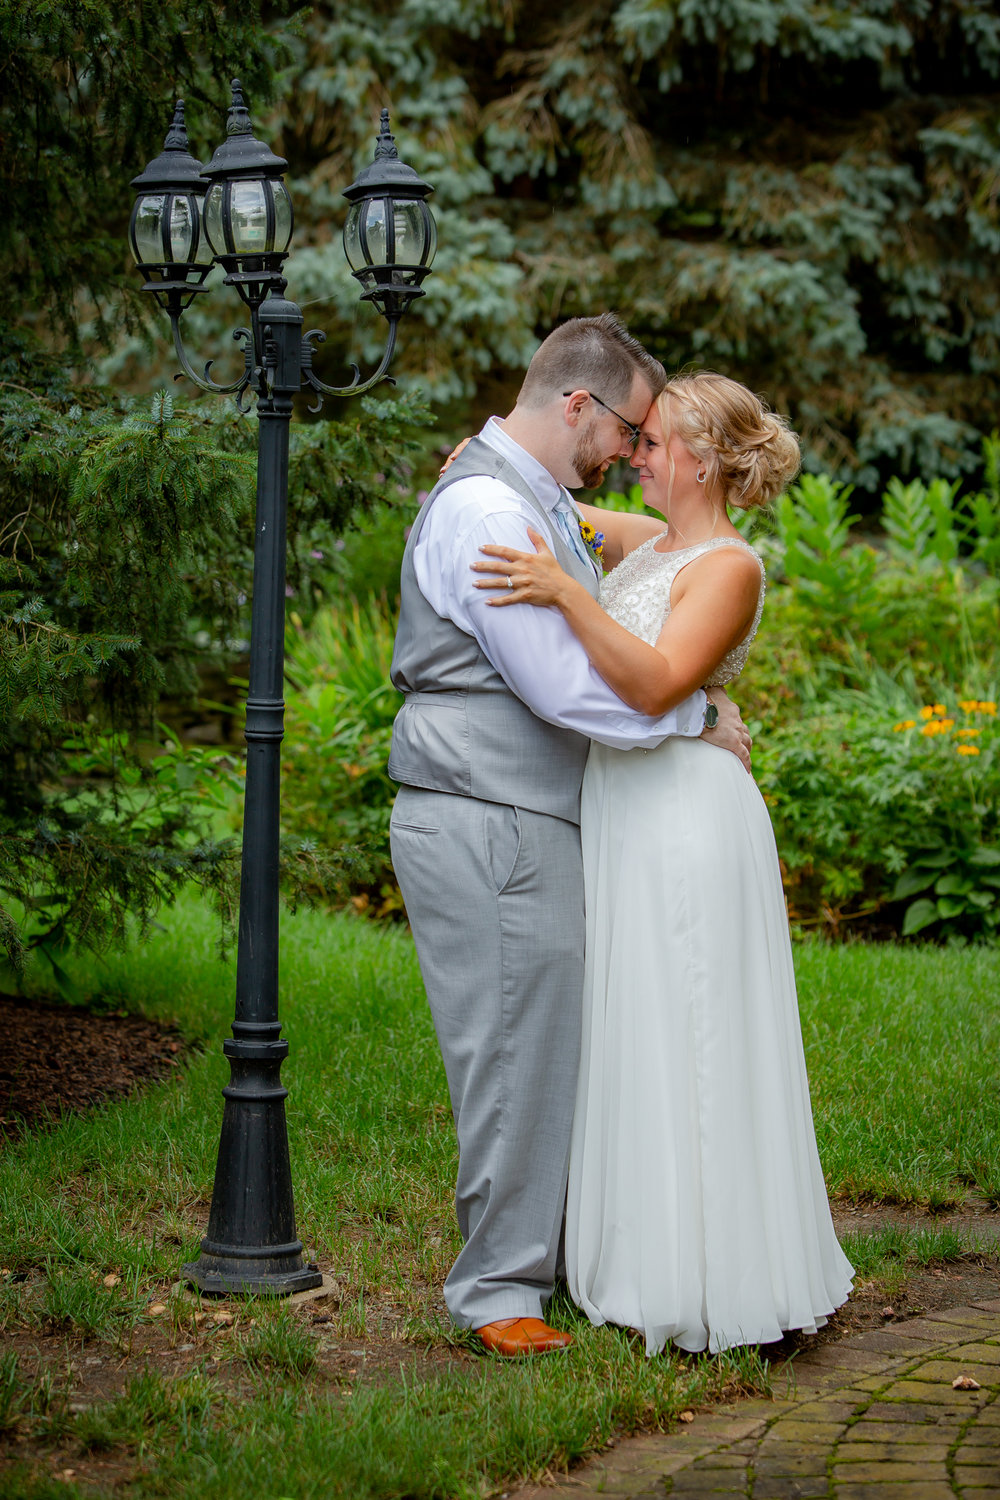 Wedding-Carriage-House-Oneonta-NY-0771.jpg